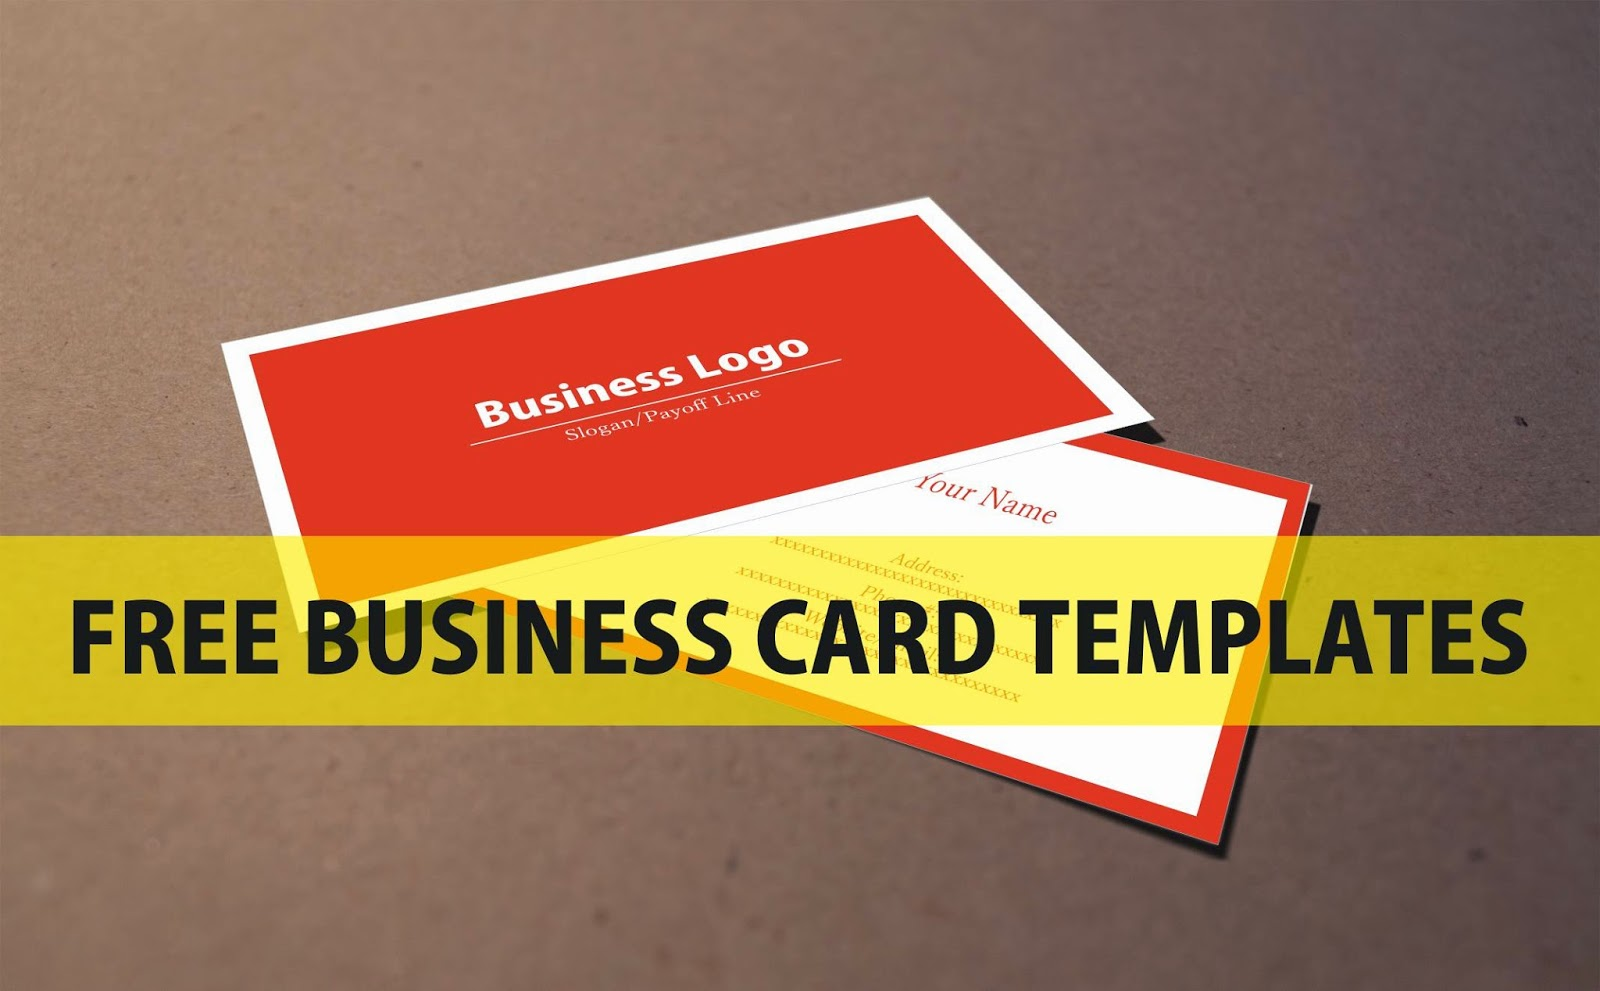 Free business card template download coreldraw file a graphic free business card template download coreldraw file cheaphphosting Choice Image